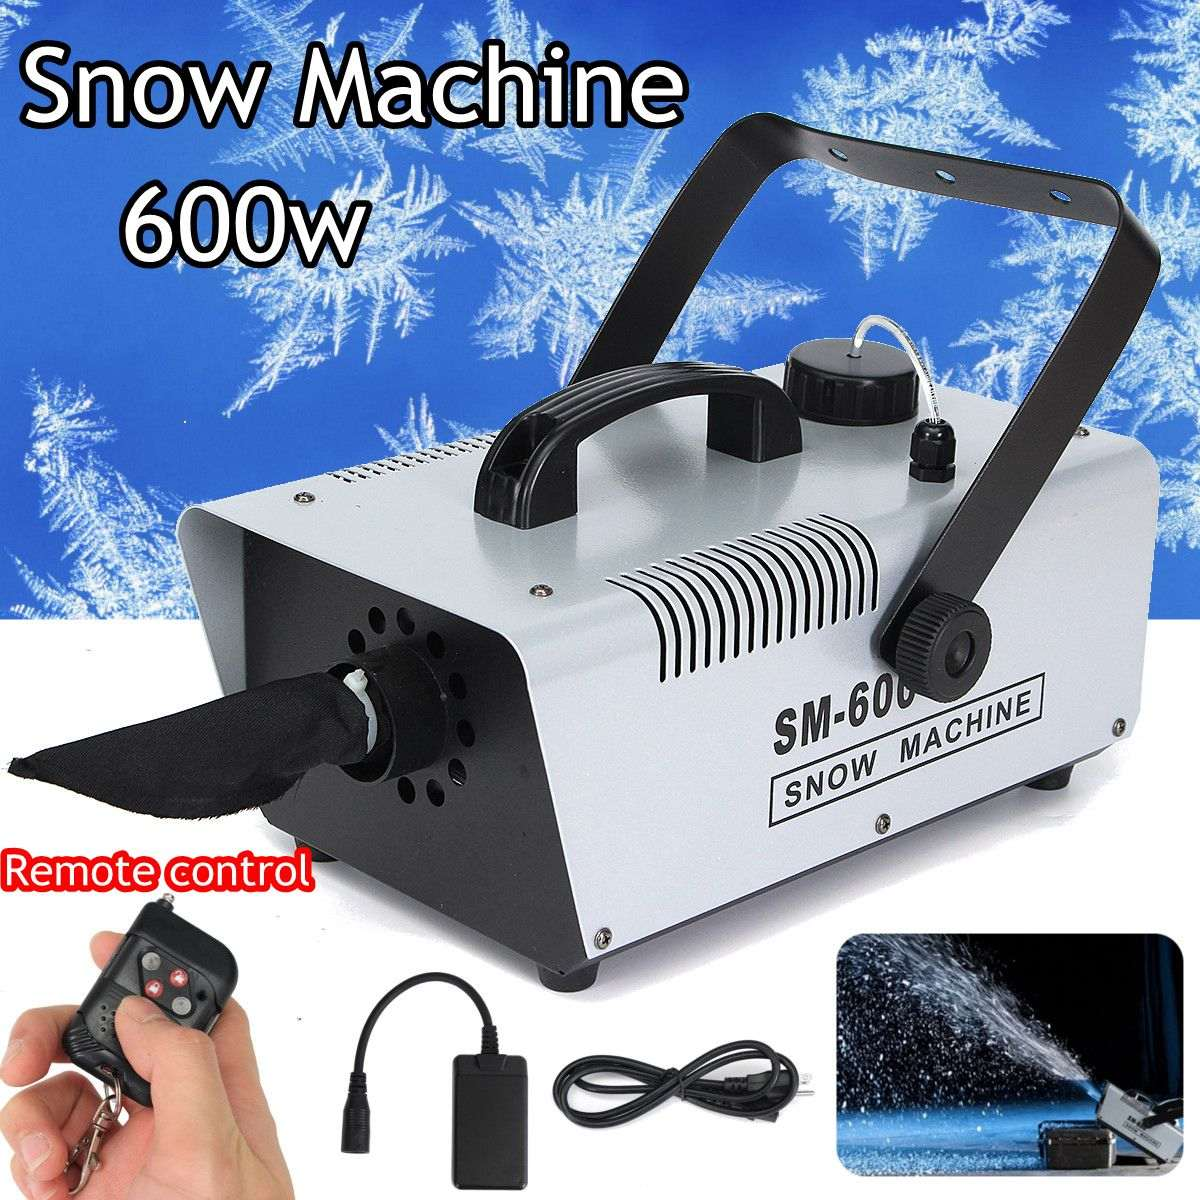 Remoter + Wire Control 600W Snow Machine Wedding Snow Machines Professional DJ Equipment 100% New